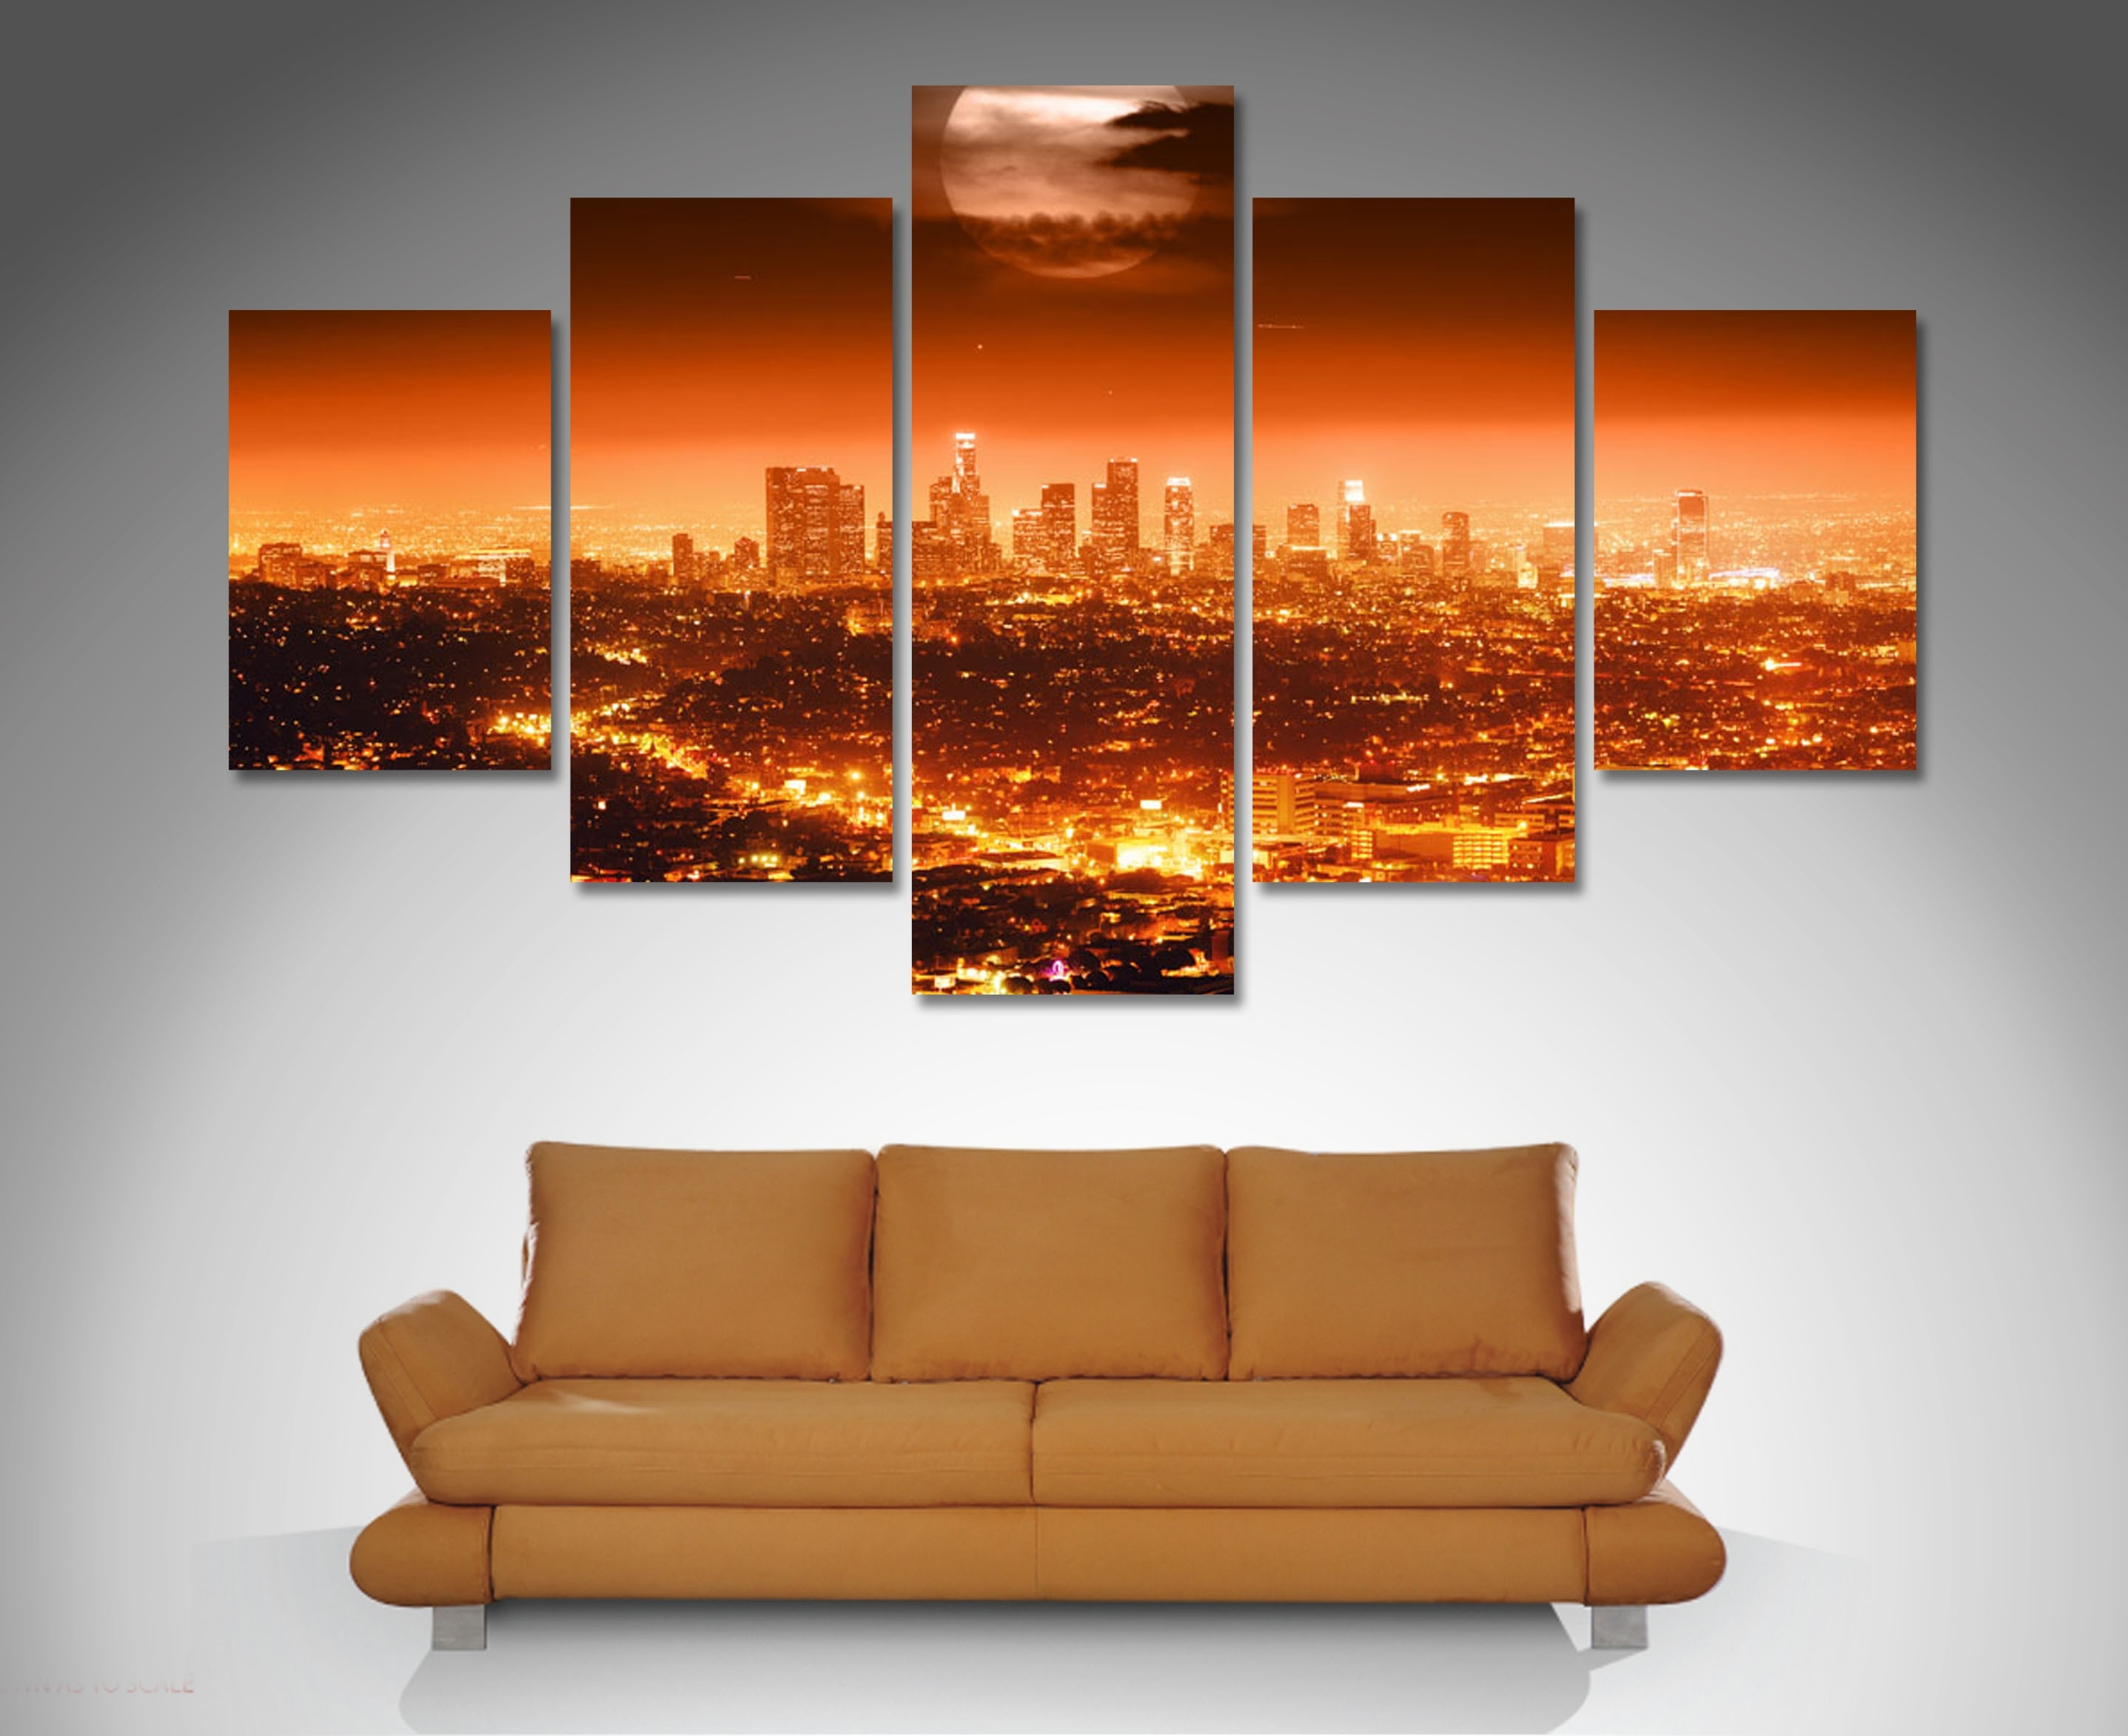 Los Angeles 5 Panel Diamond Shape Canvas Prints Http://www With Regard To Current Brisbane Abstract Wall Art (View 10 of 20)